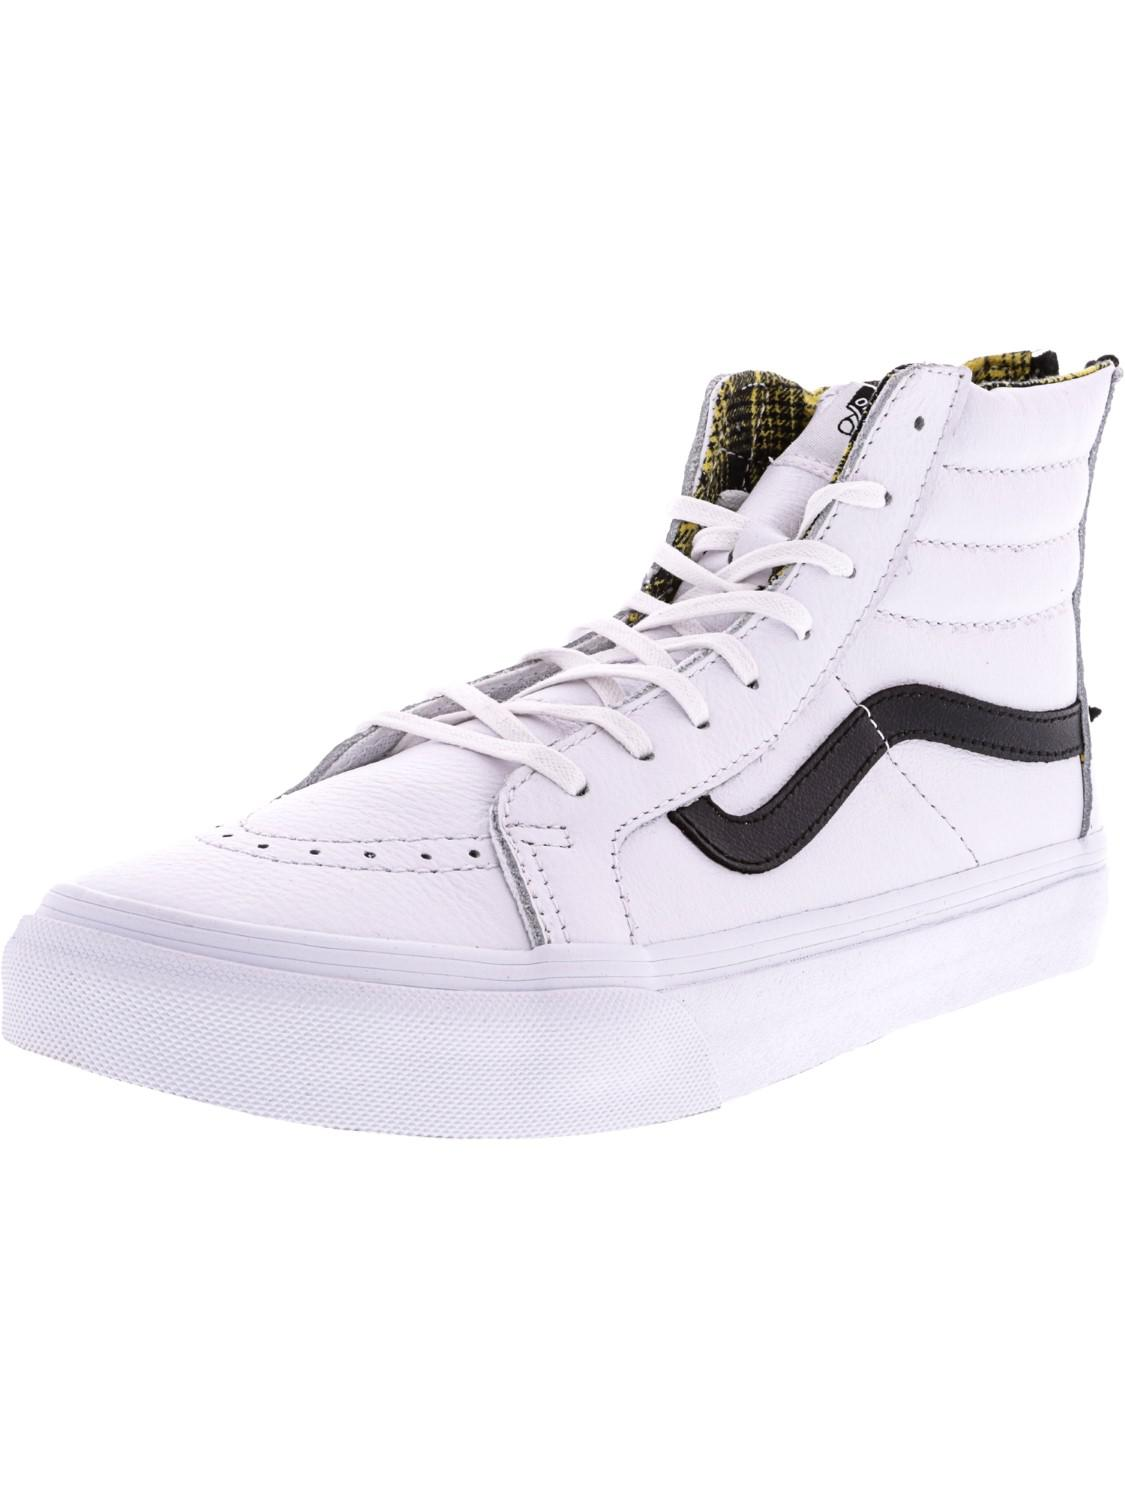 fbe796f8bed Lyst - Vans Sk8-hi Slim Zip Fashion Trainer Skateboarding Shoes in White